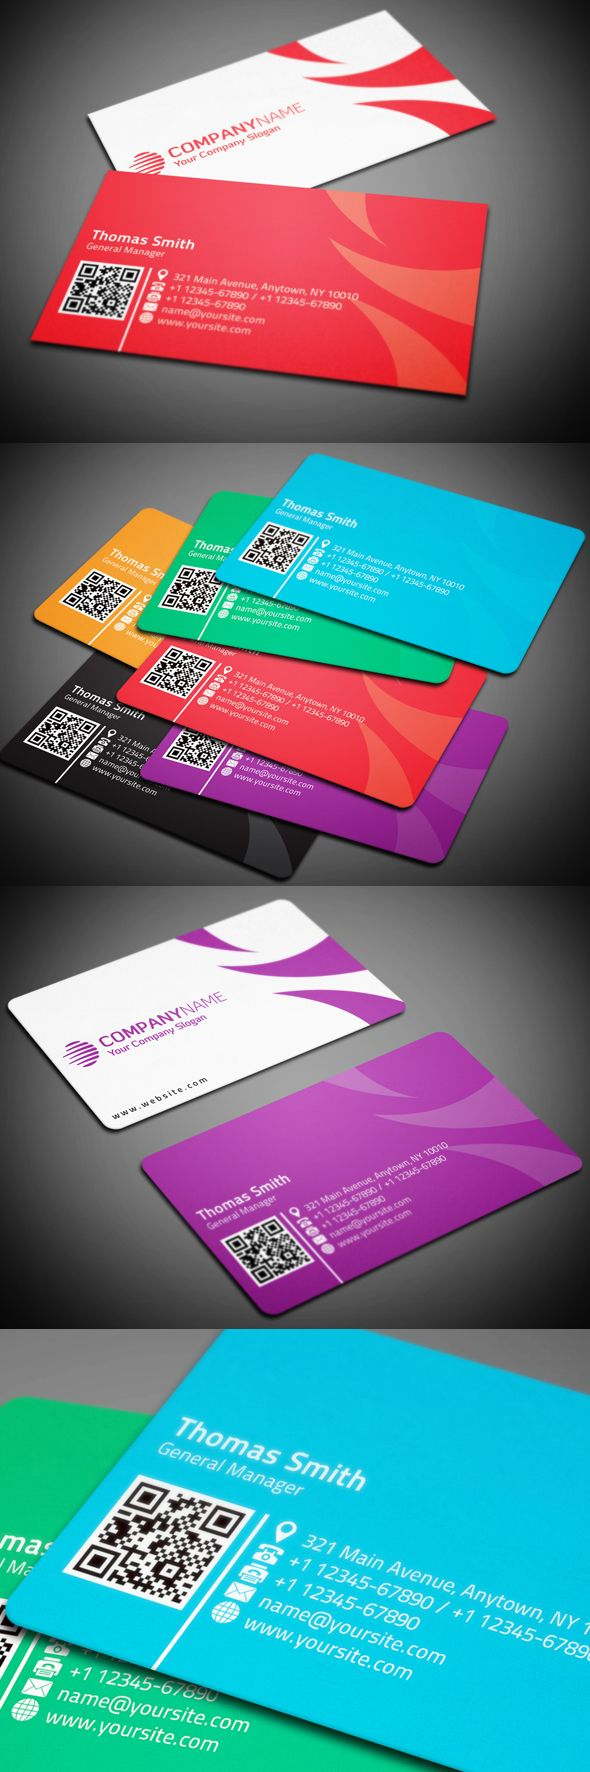 Corporate Business Card By Mohammad Ali Via Behance Black